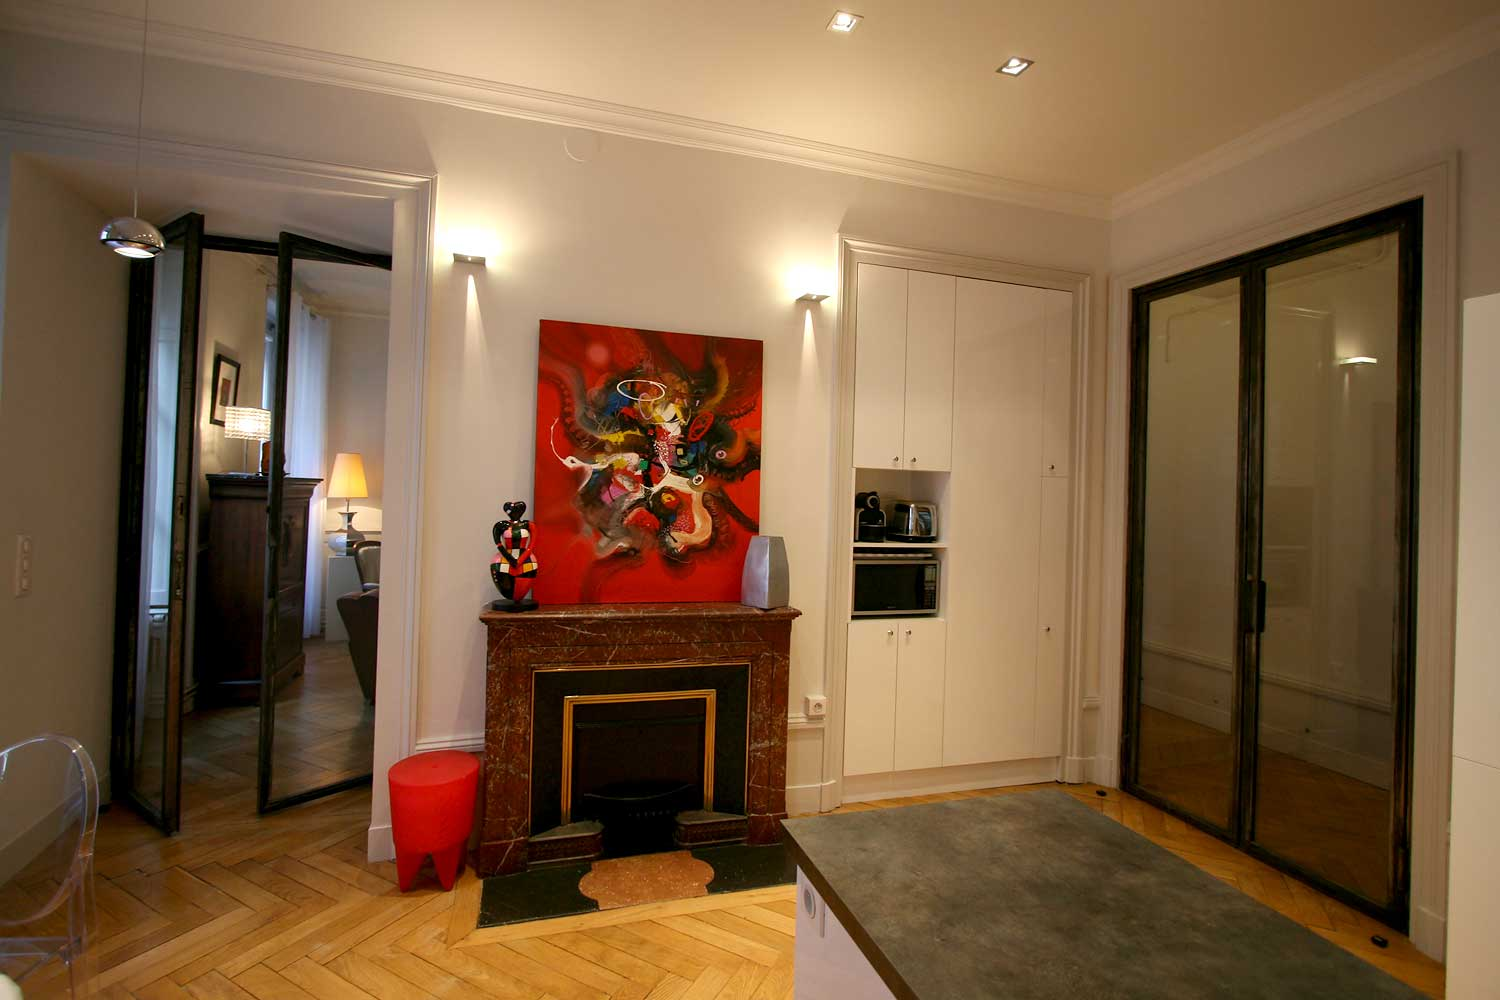 travaux de r novation d 39 appartement haussmannien paris 5 r nov 39 btp. Black Bedroom Furniture Sets. Home Design Ideas